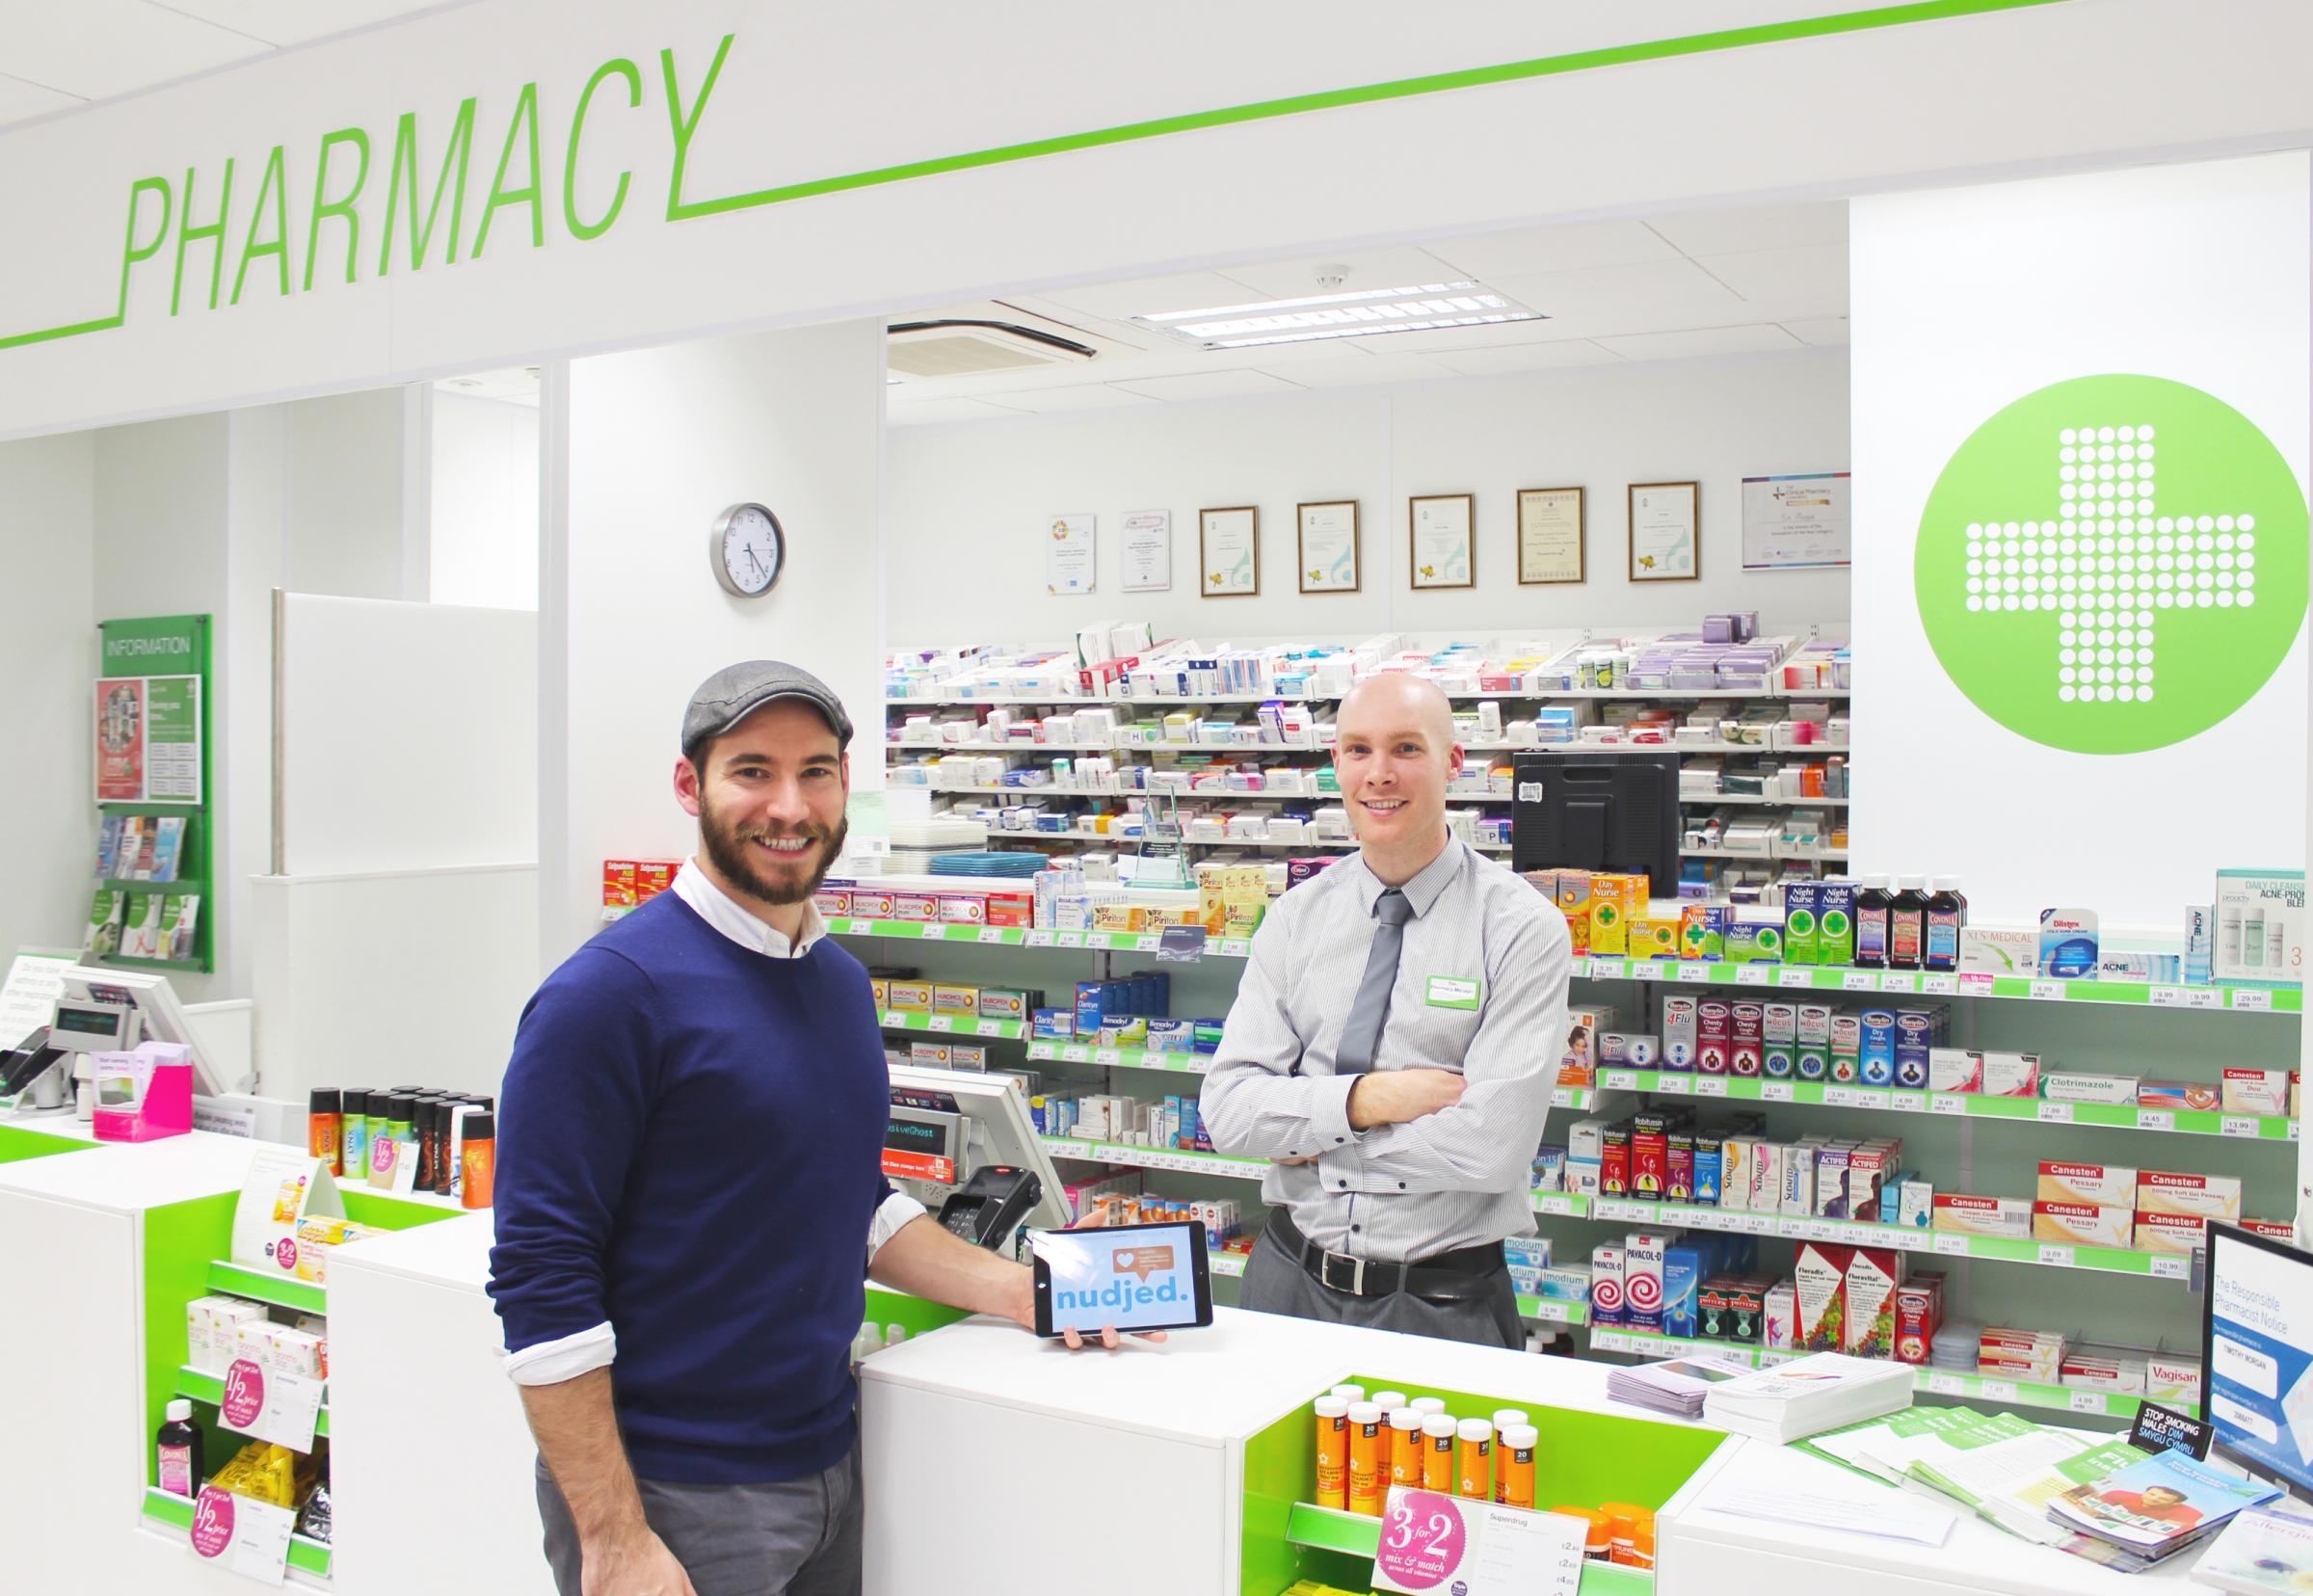 Health technology startup nudjed secures pioneering partnership with ...